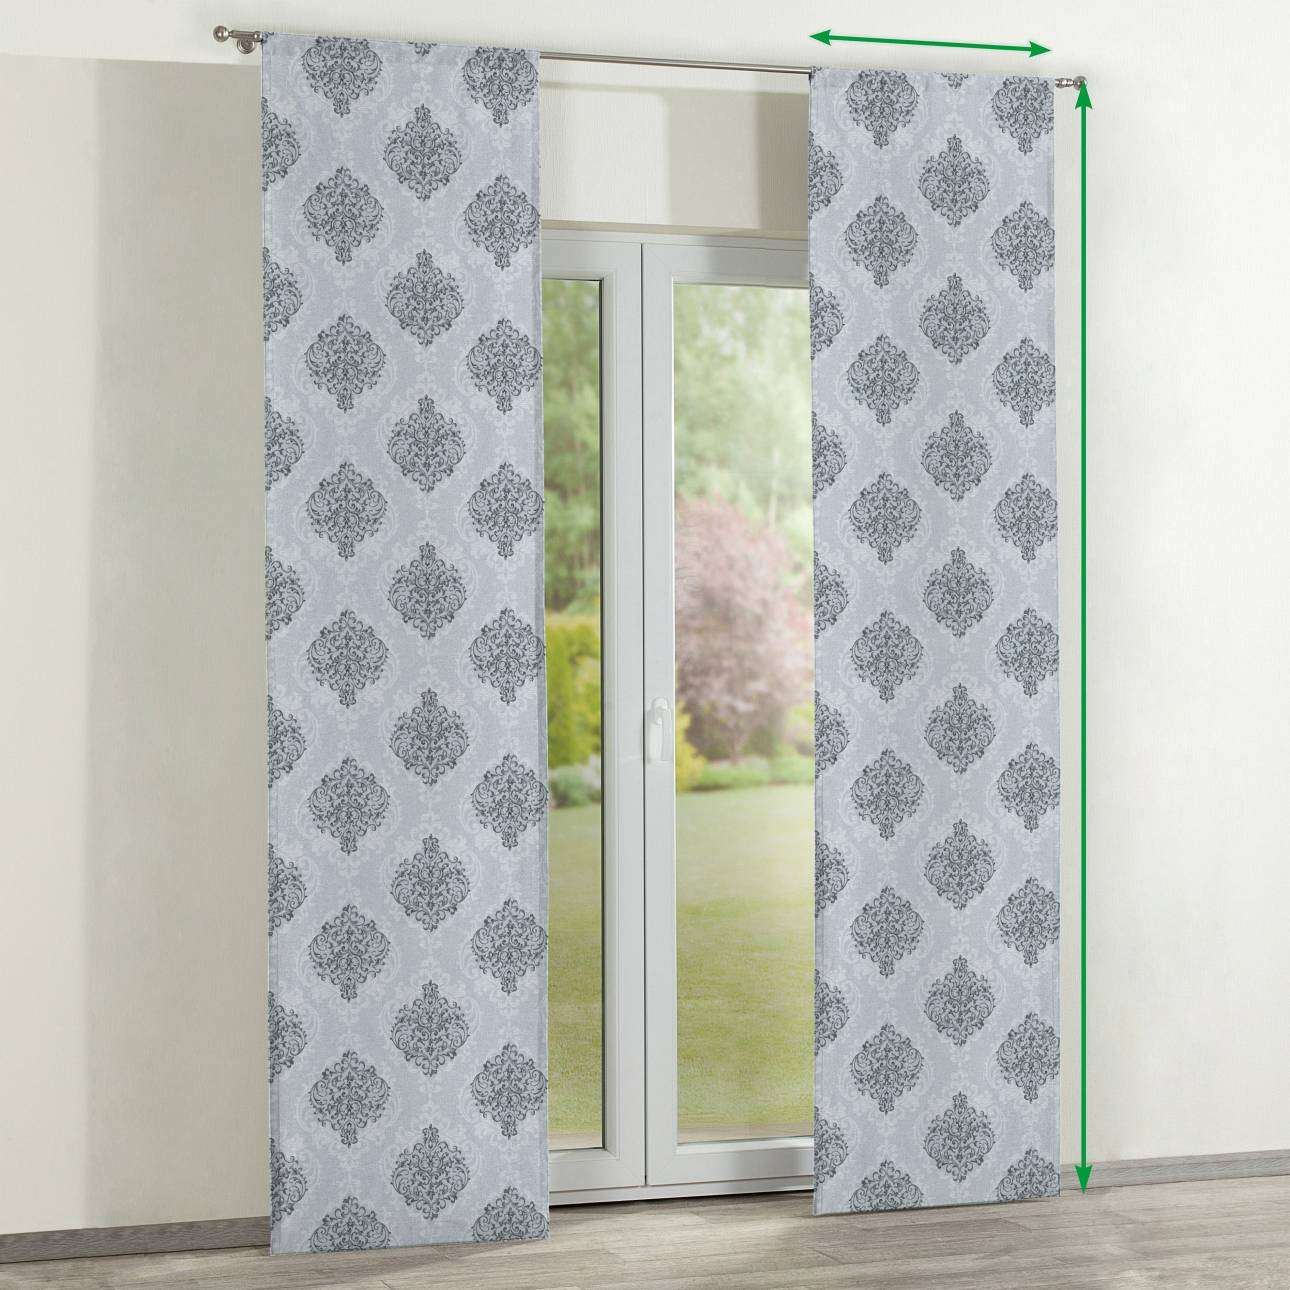 Slot panel curtains – Set of 2 in collection Rustica, fabric: 138-16